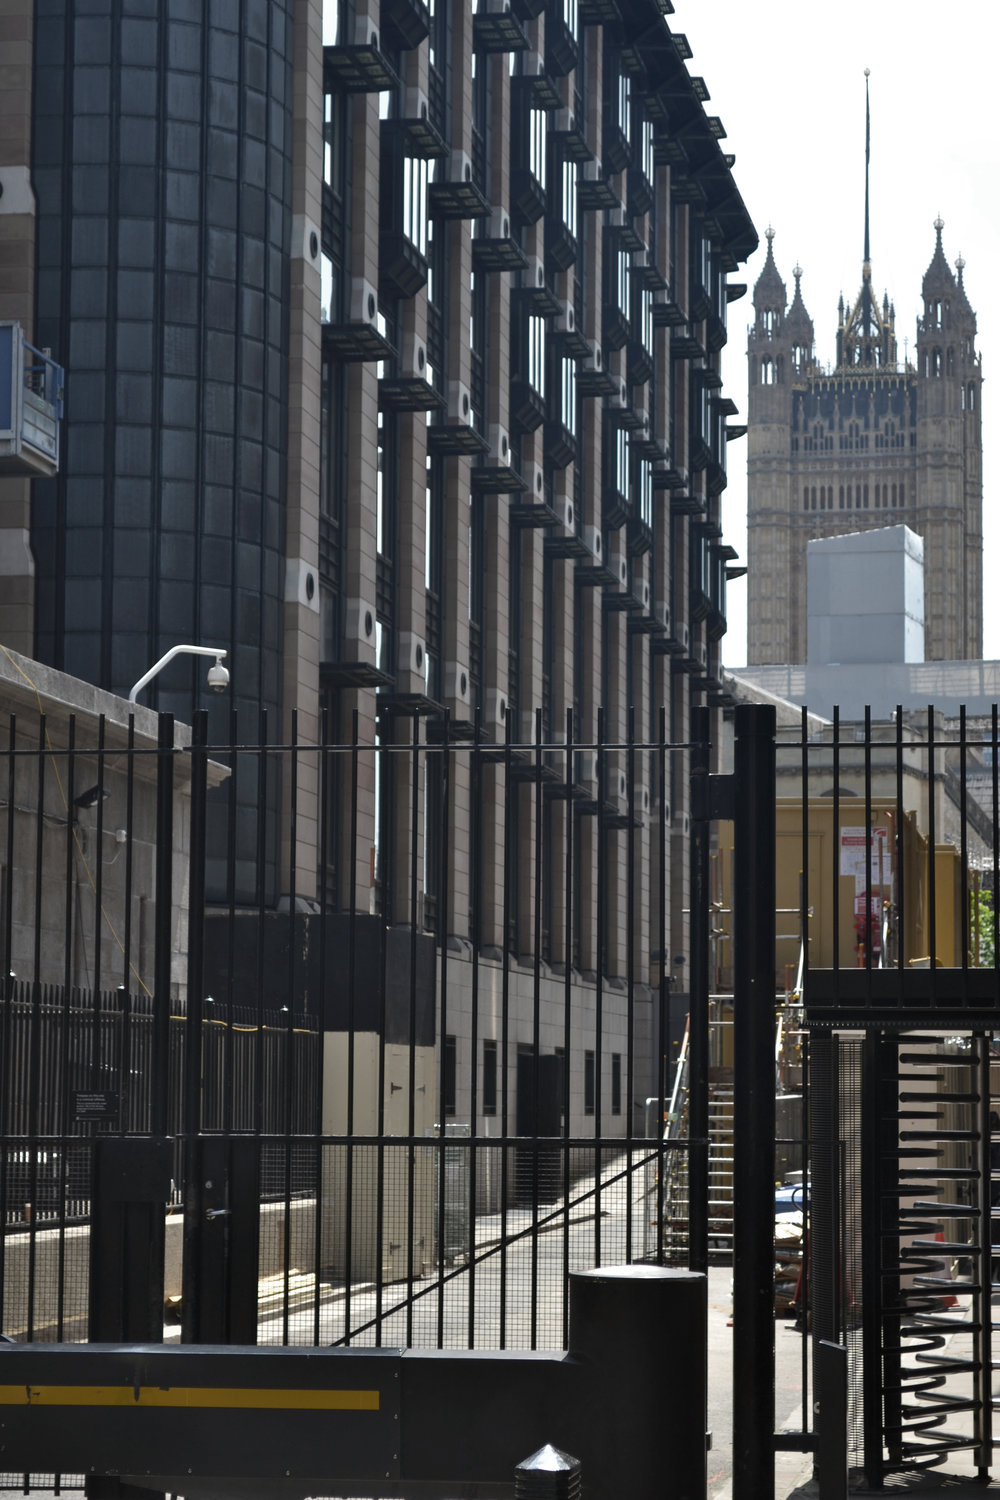 Layers of security - Portcullis House and Victoria Tower as viewed from Derby Gate